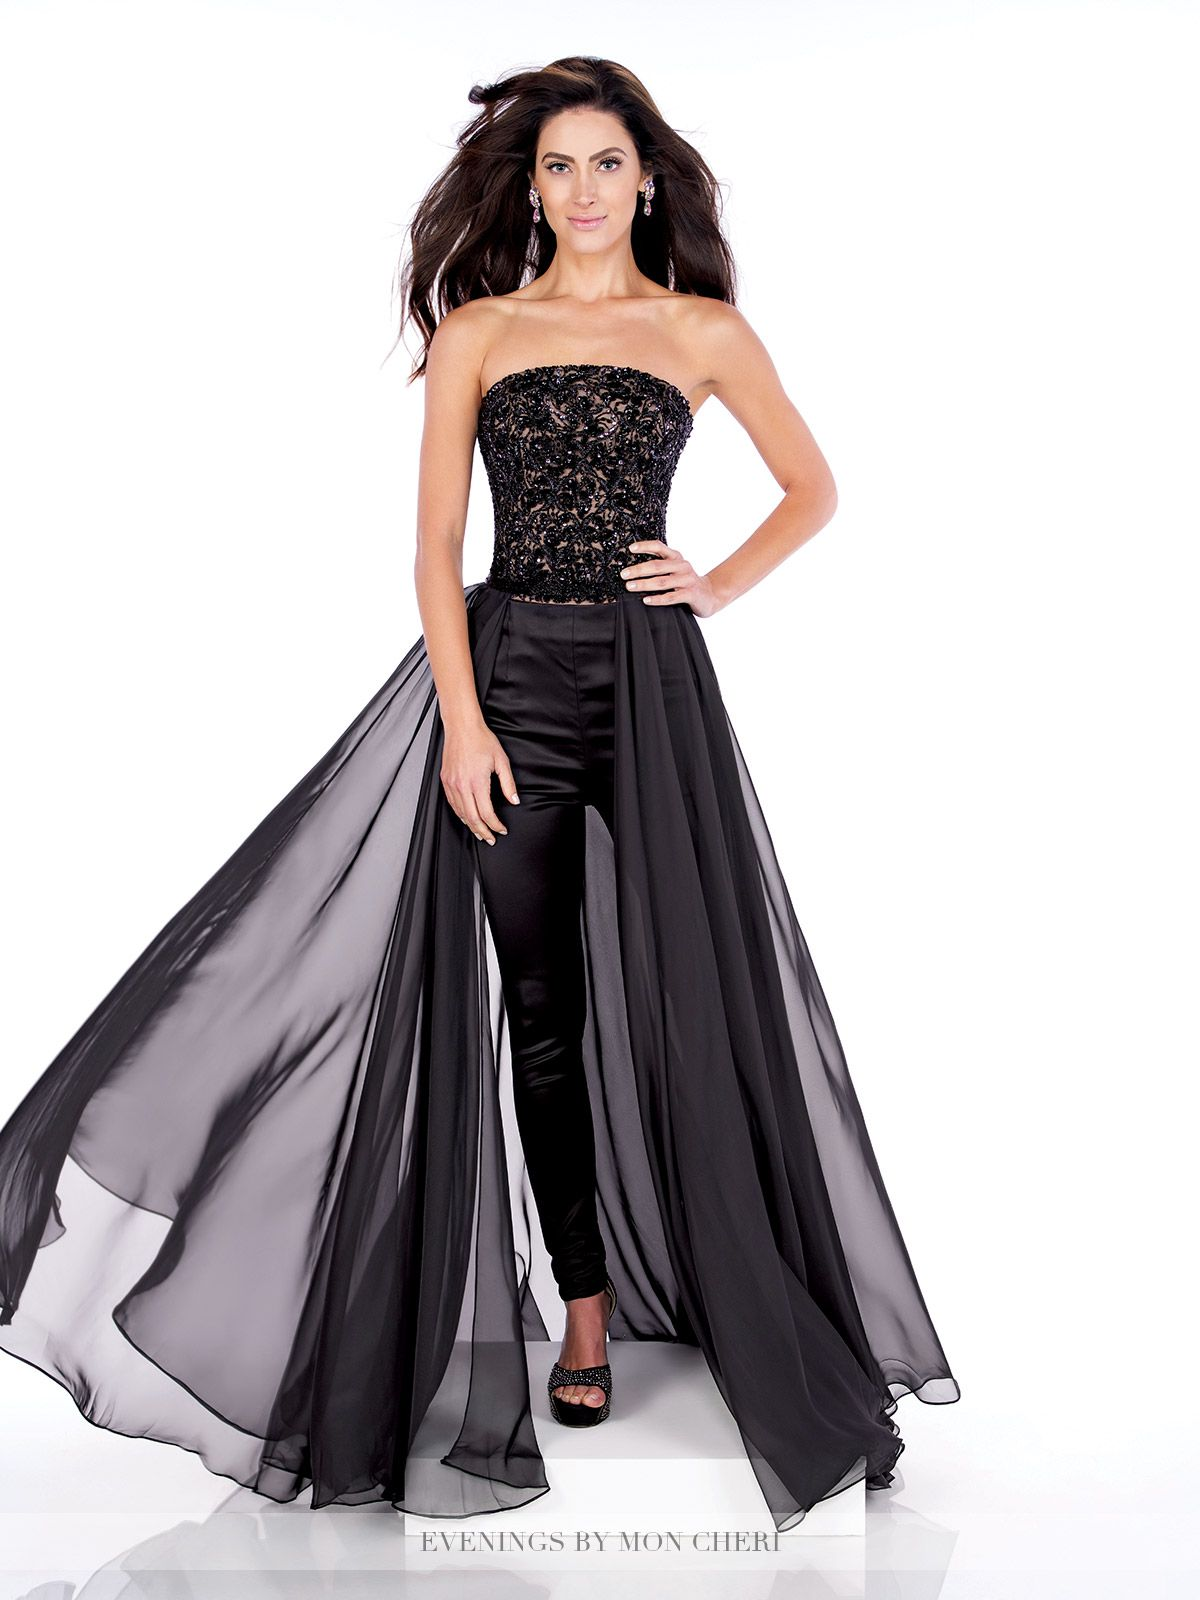 48035bce38f Three-piece stretch satin and chiffon dress set